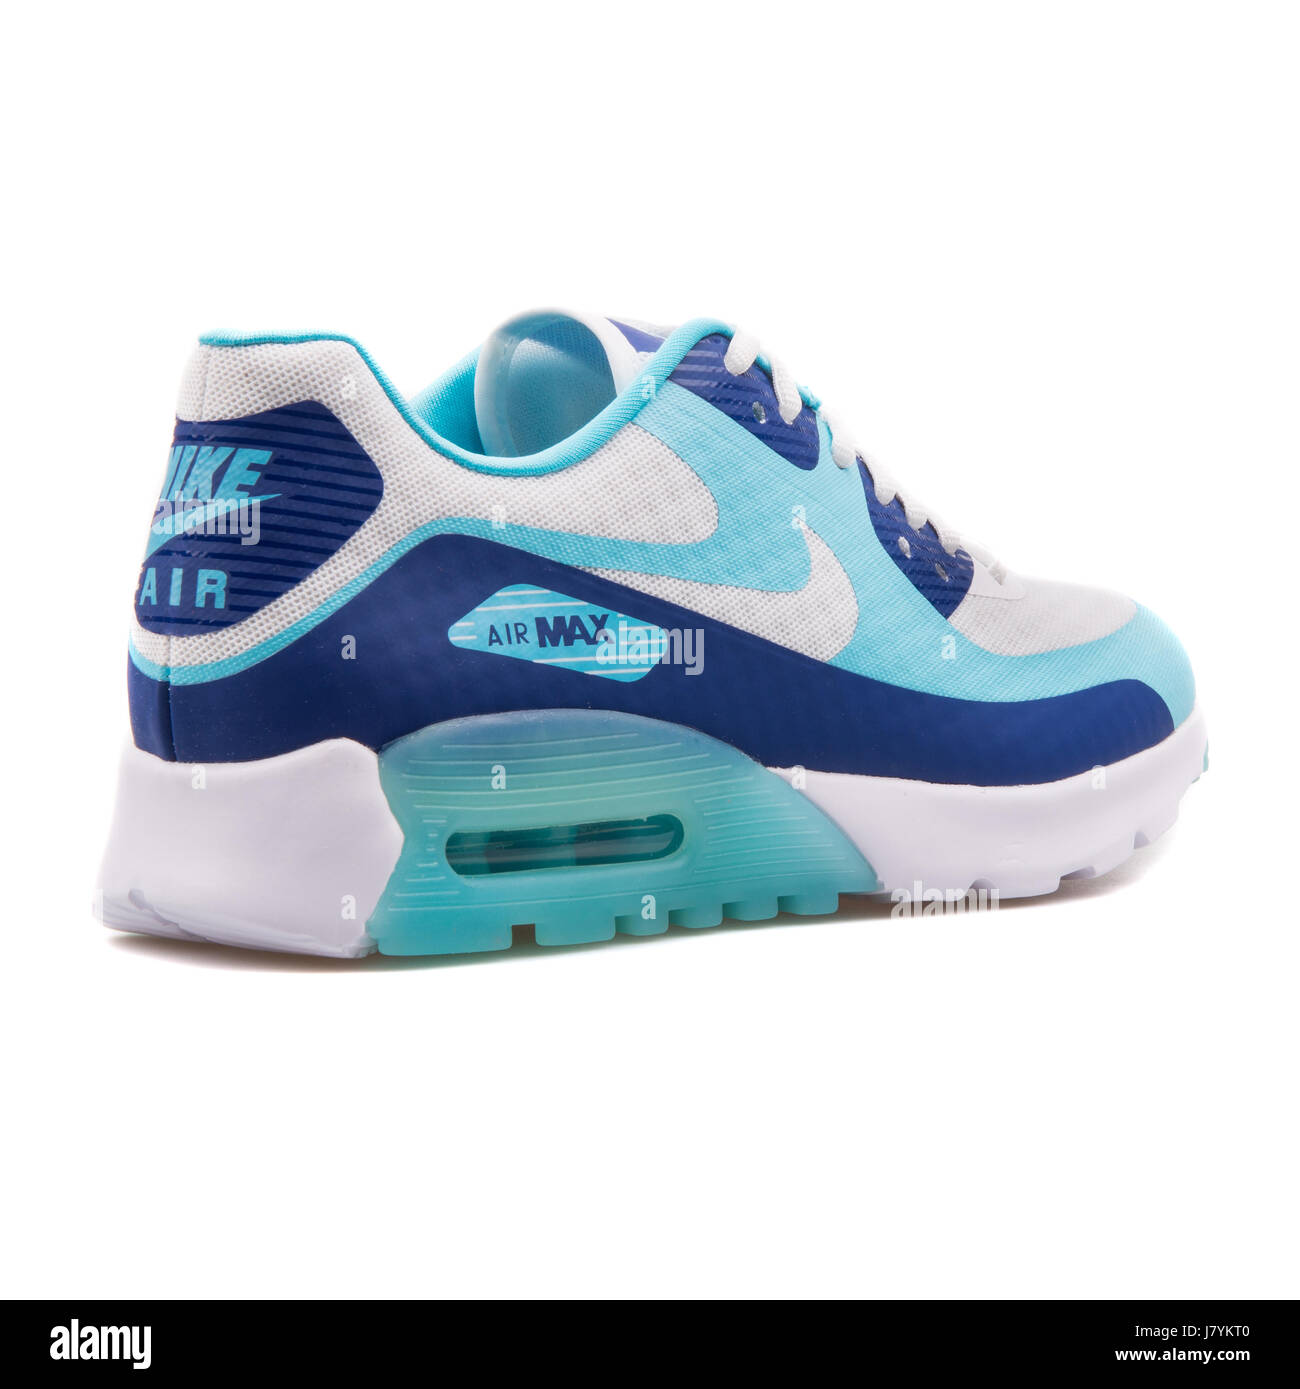 Nike W Air Max 90 Ultra BR Deep Royal Blue, Turquoise and White ...